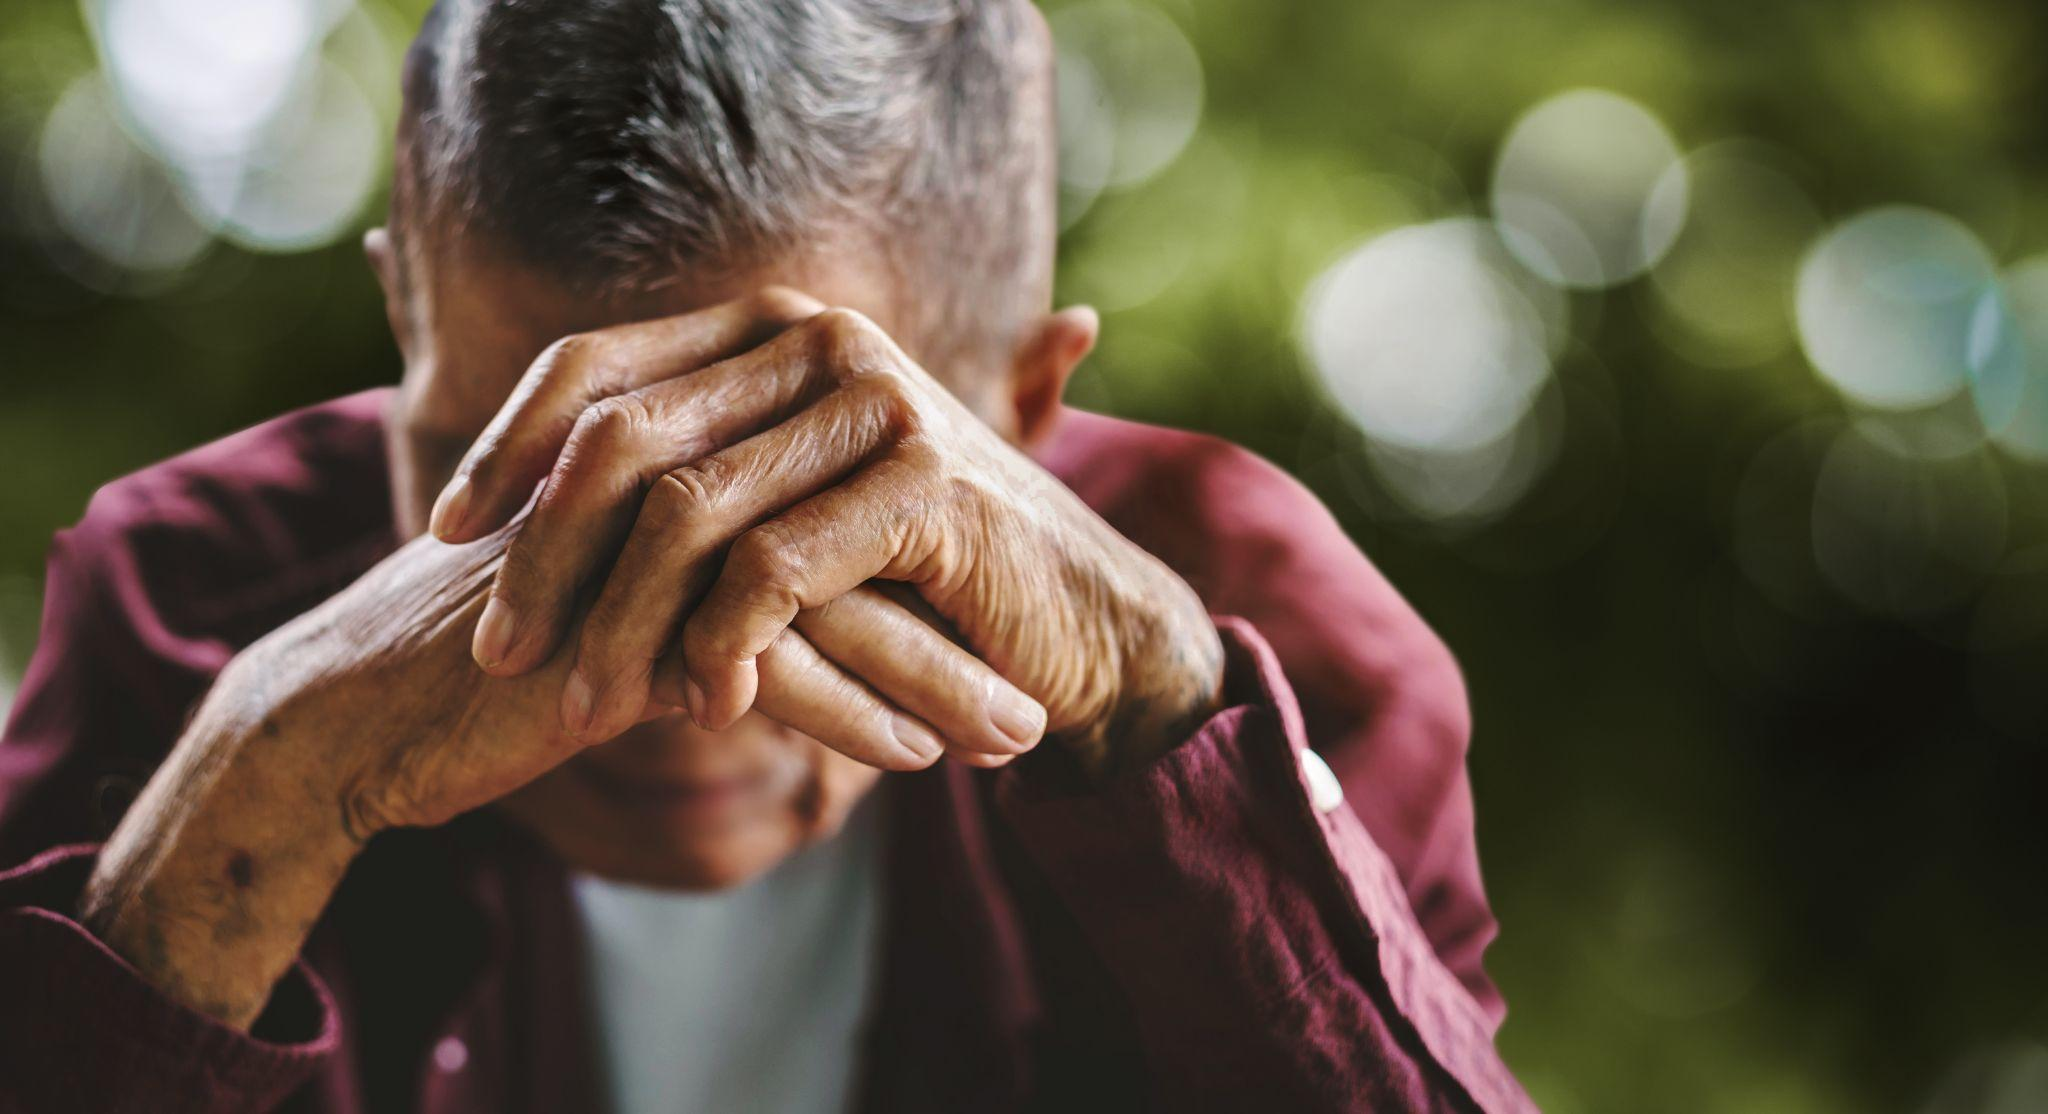 Signs of Alcoholism in Seniors